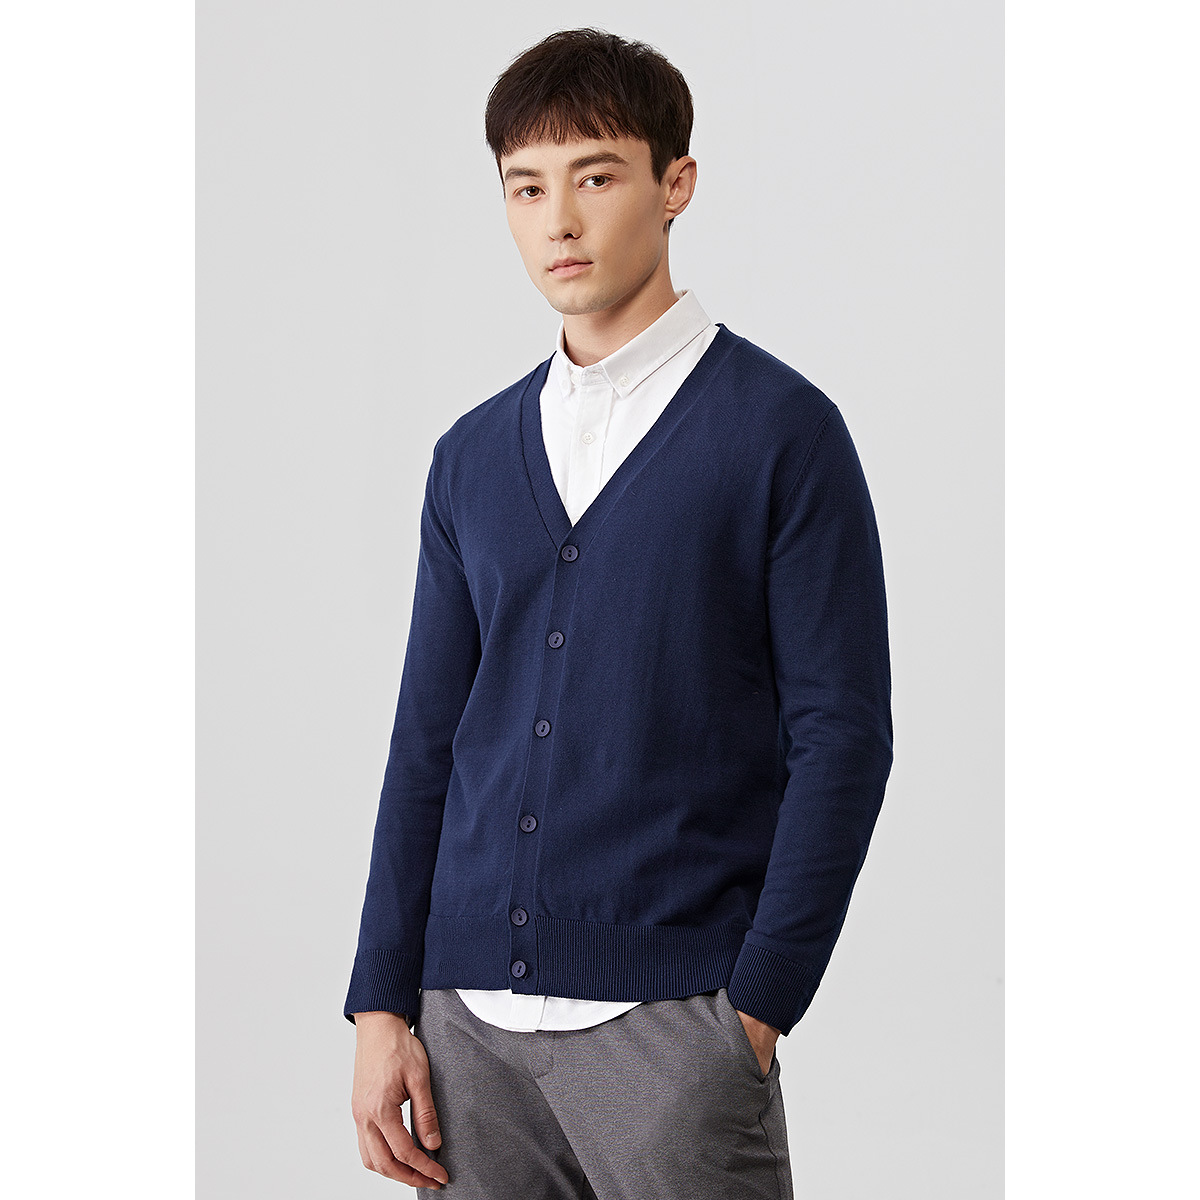 Autumn Long Sleeve Loose V-neck Knitted Cardigan Men Casual Cotton Oversized Sweater Male Cute Boys Sweaters Blue Thin Knitwear